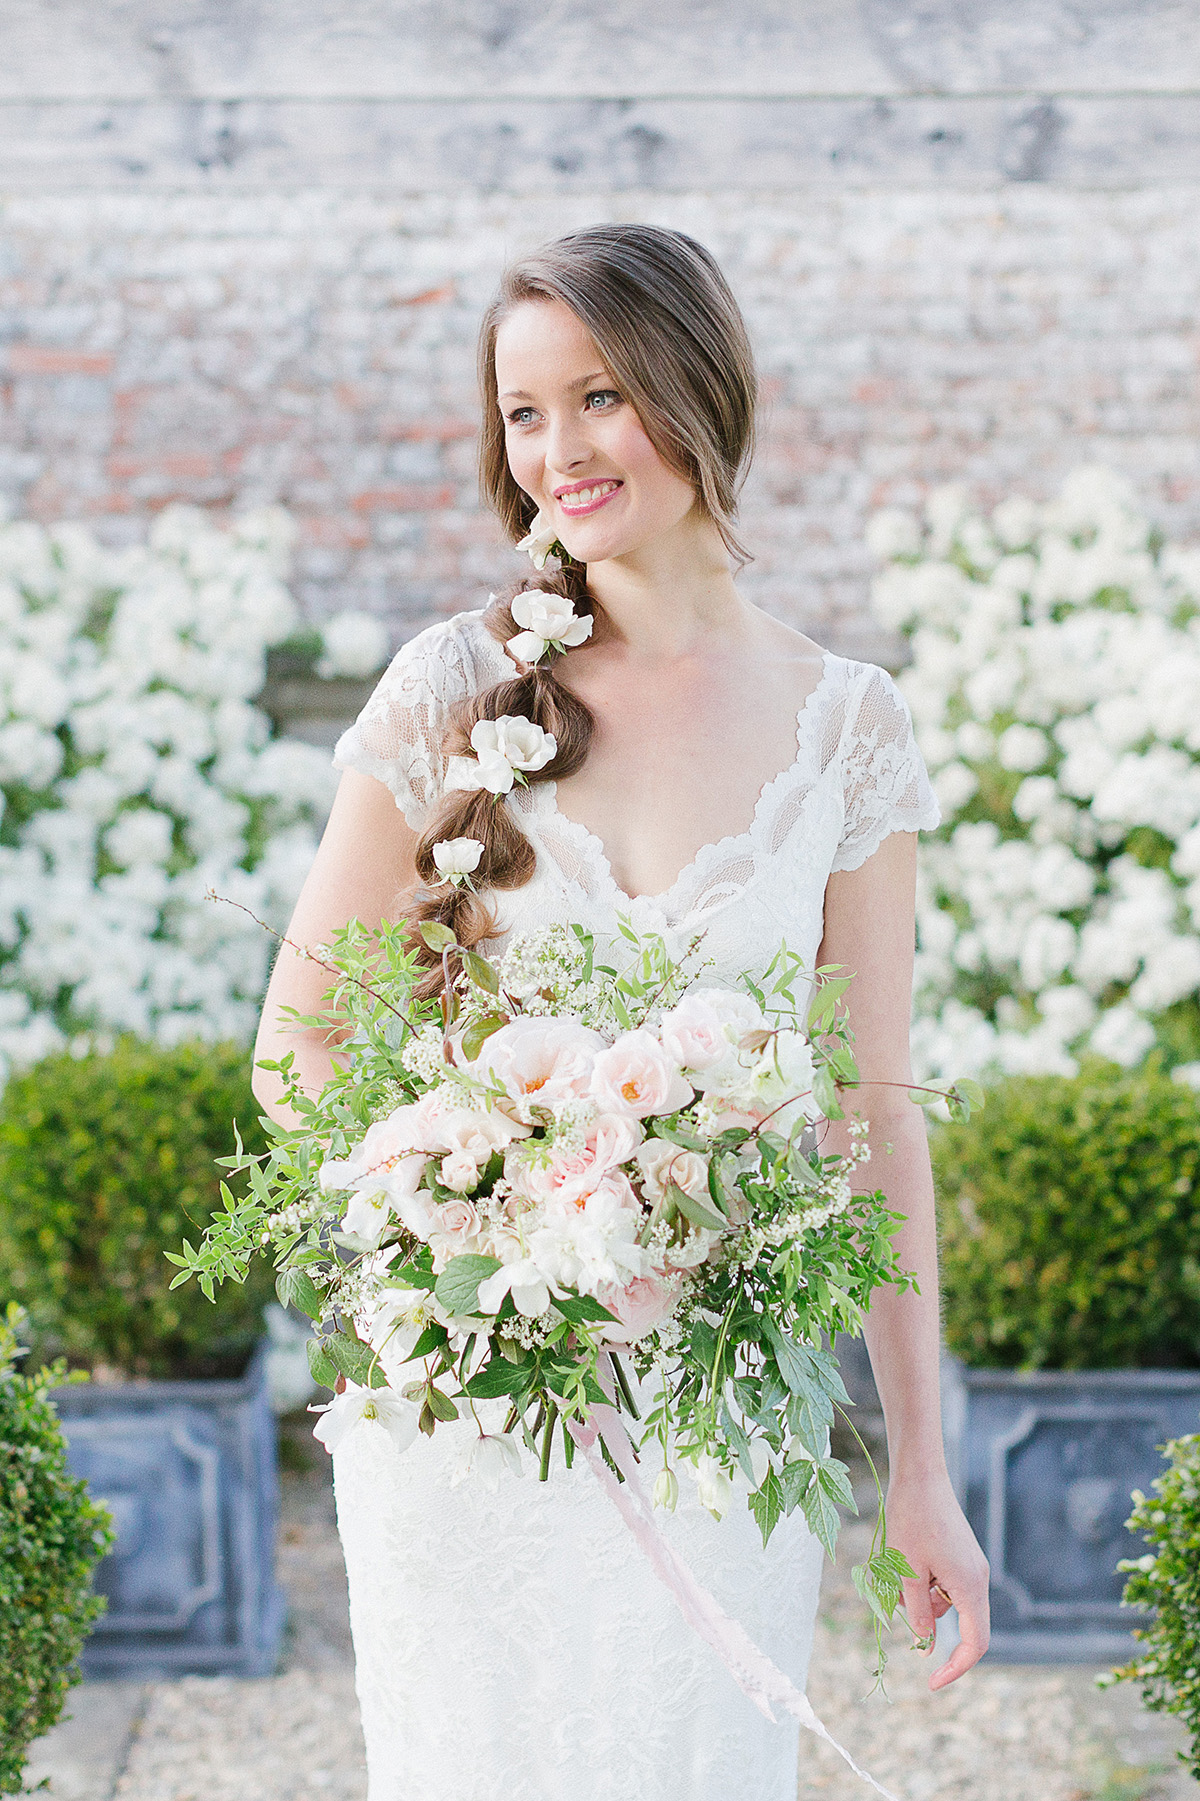 Ideas and Inspiration for an Elegant English Country Garden Wedding (Styled Shoots Supplier Spotlight )